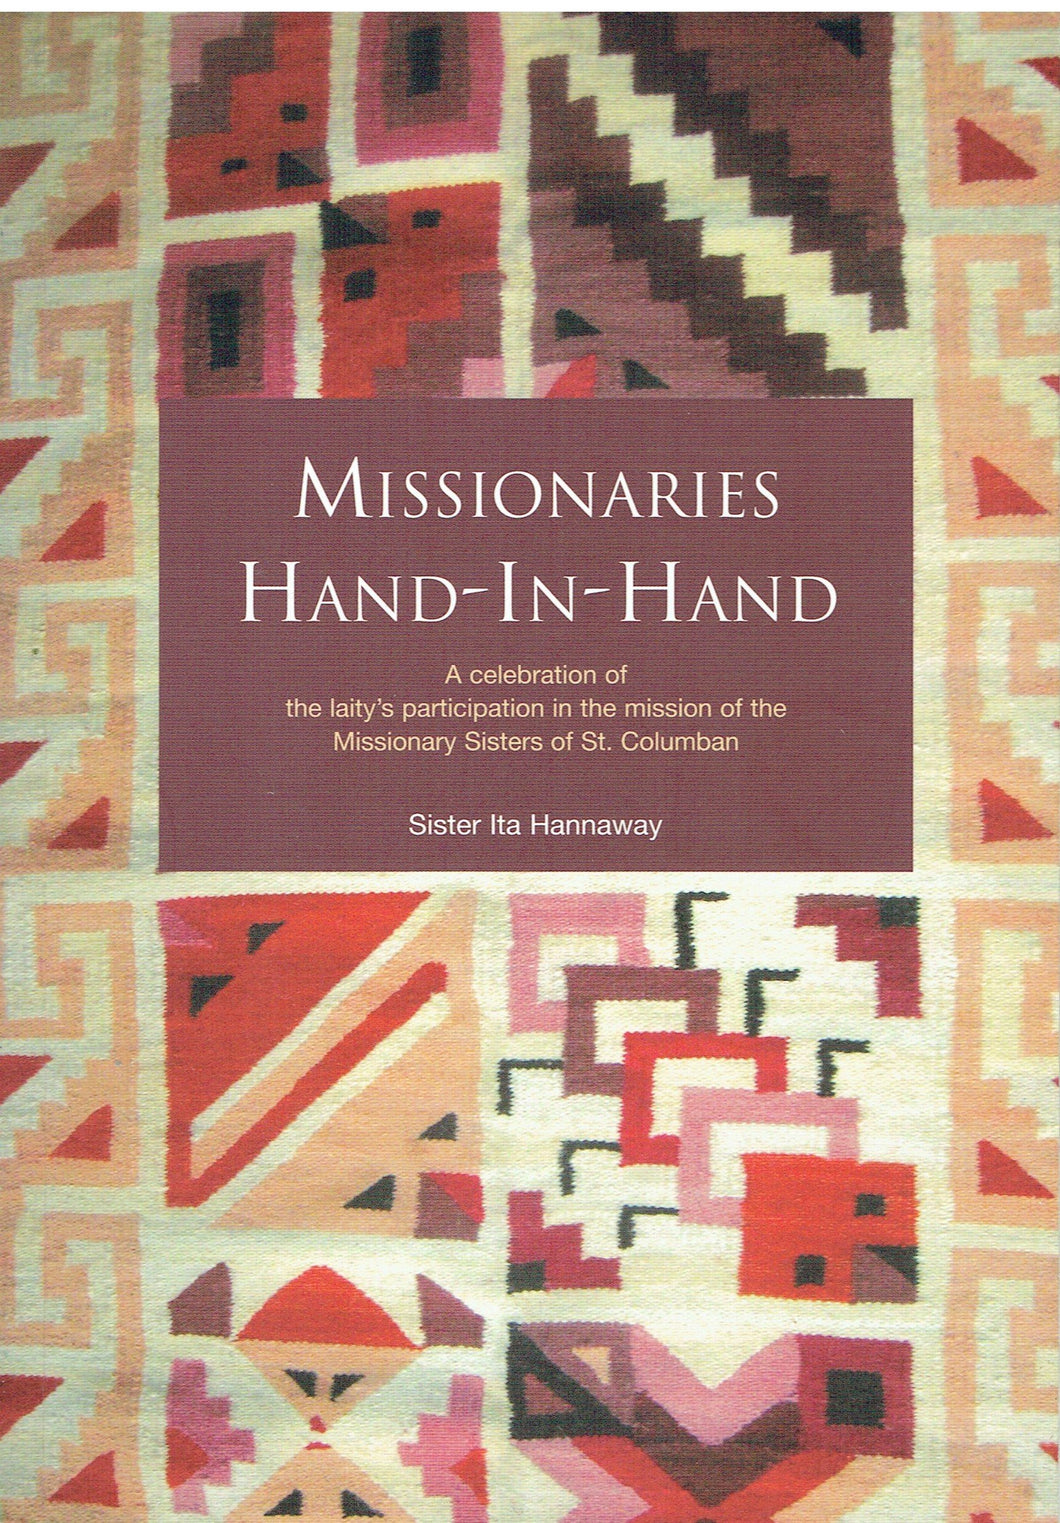 Missionaries Hand-in-hand: A Celebration of the Laity's Participation in the Mission of the Missionary Sisters of St. Columban